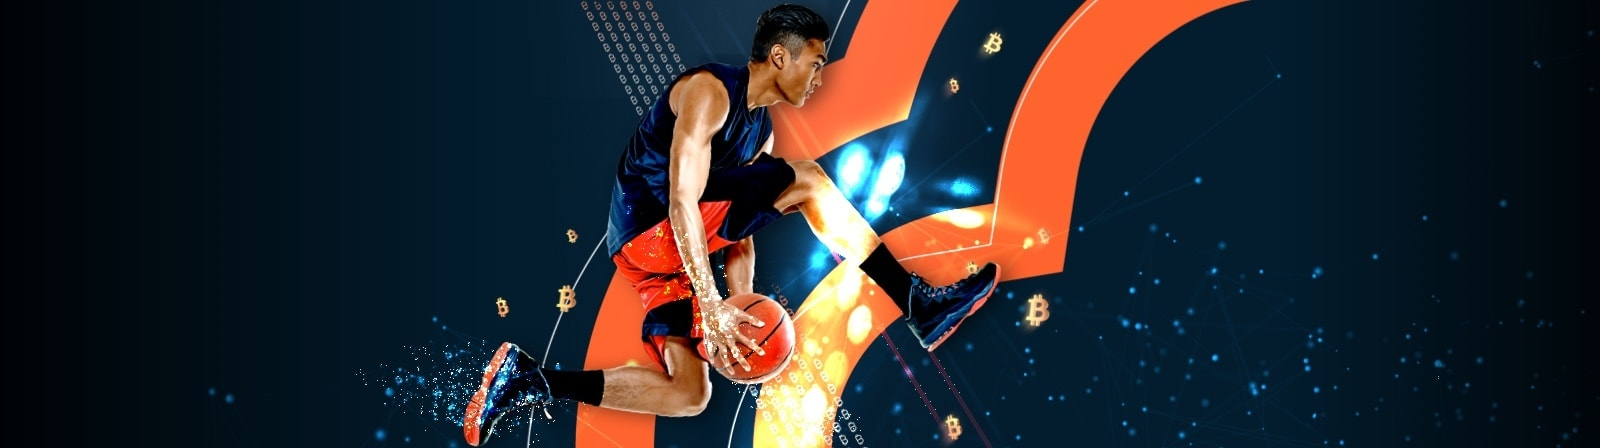 NBA - Best Odds Everyday! - Check out our daily best odds fixture here!